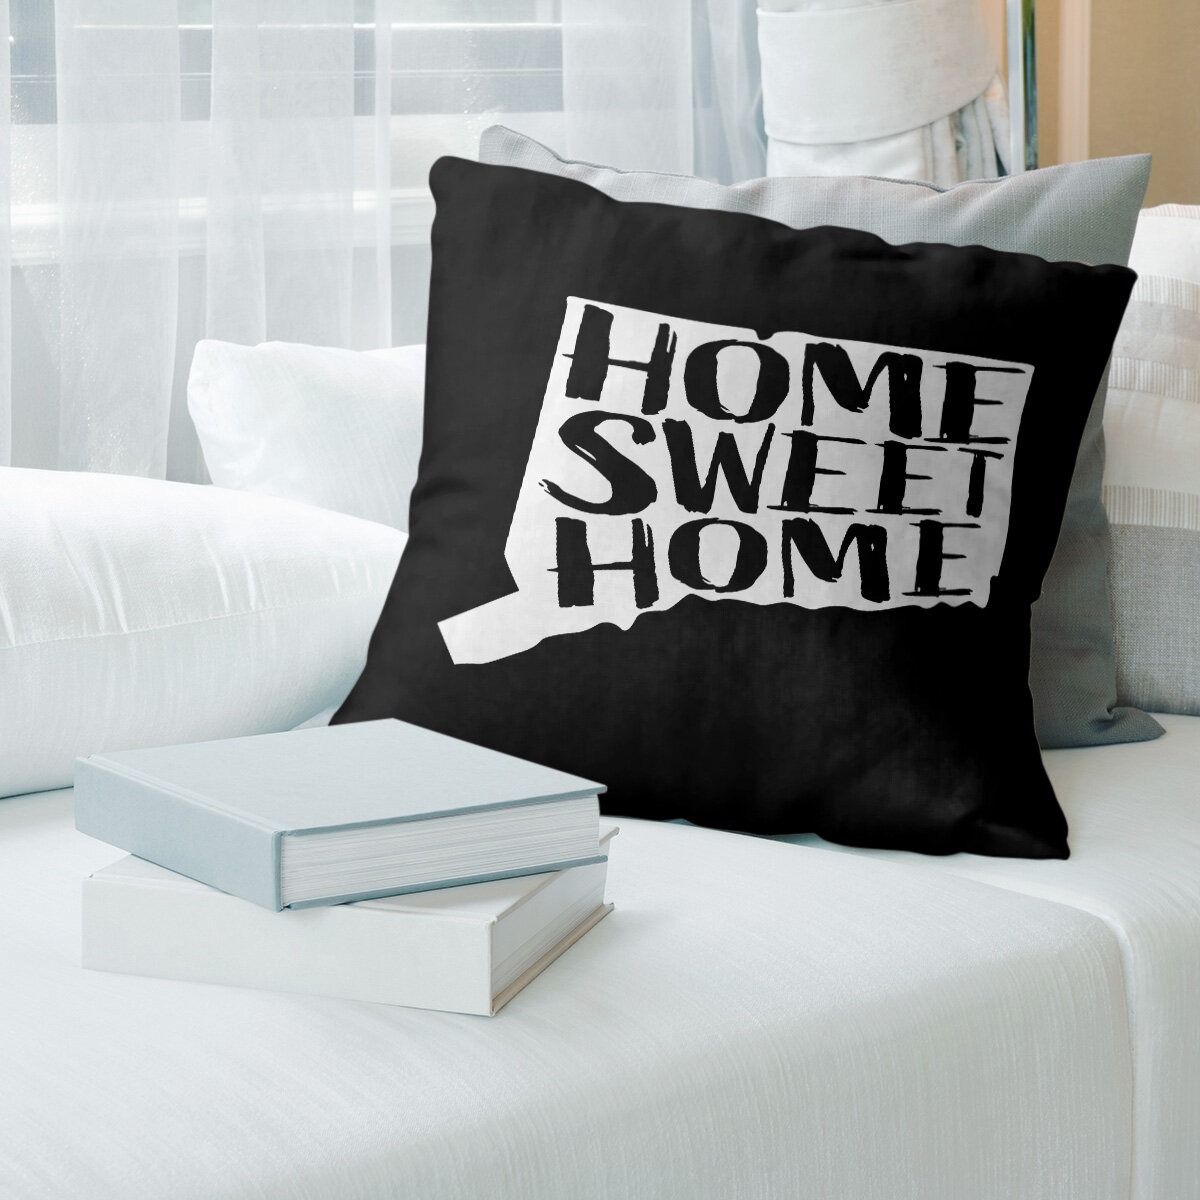 East Urban Home Home Sweet Connecticut Pillow Wayfair